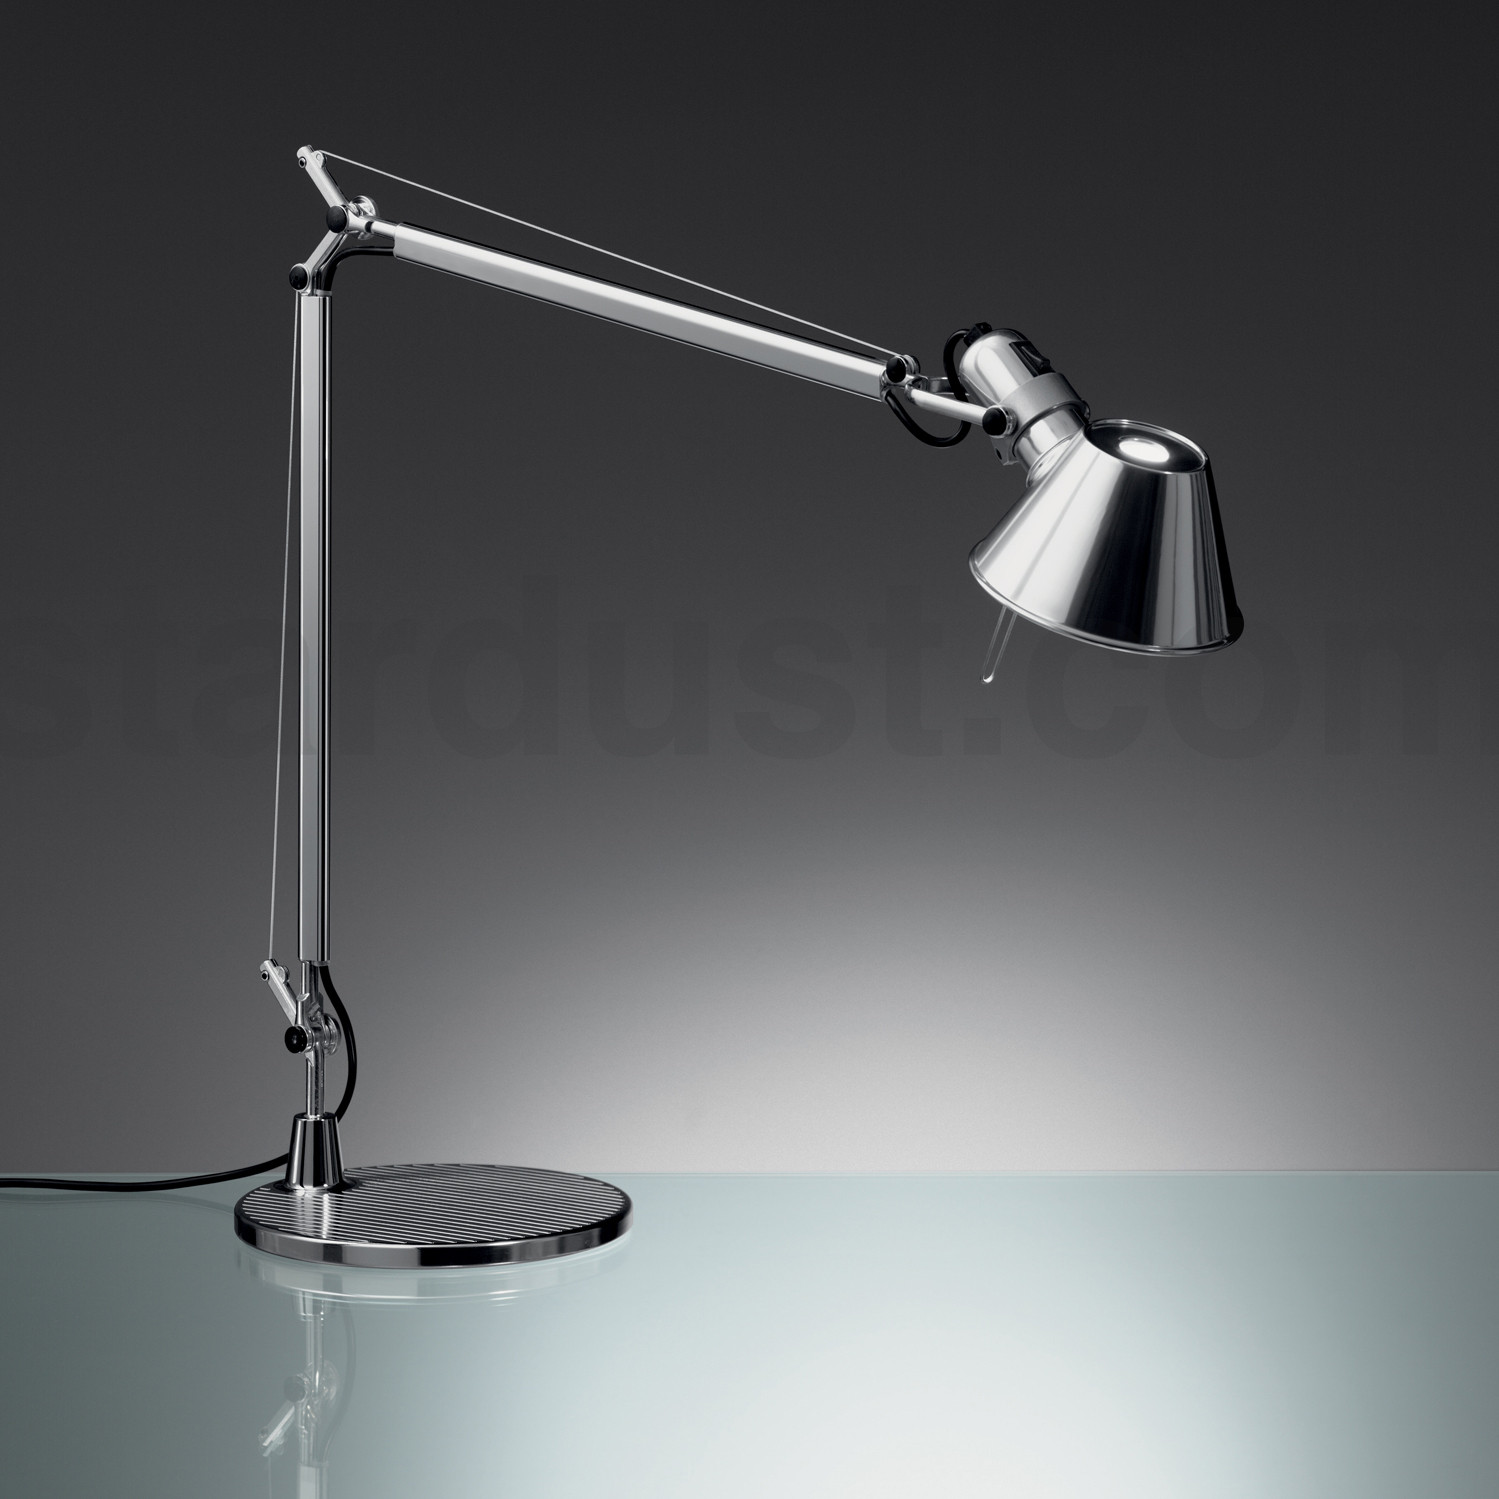 Best ideas about Modern Desk Lamps . Save or Pin Home ficeDecoration Now.